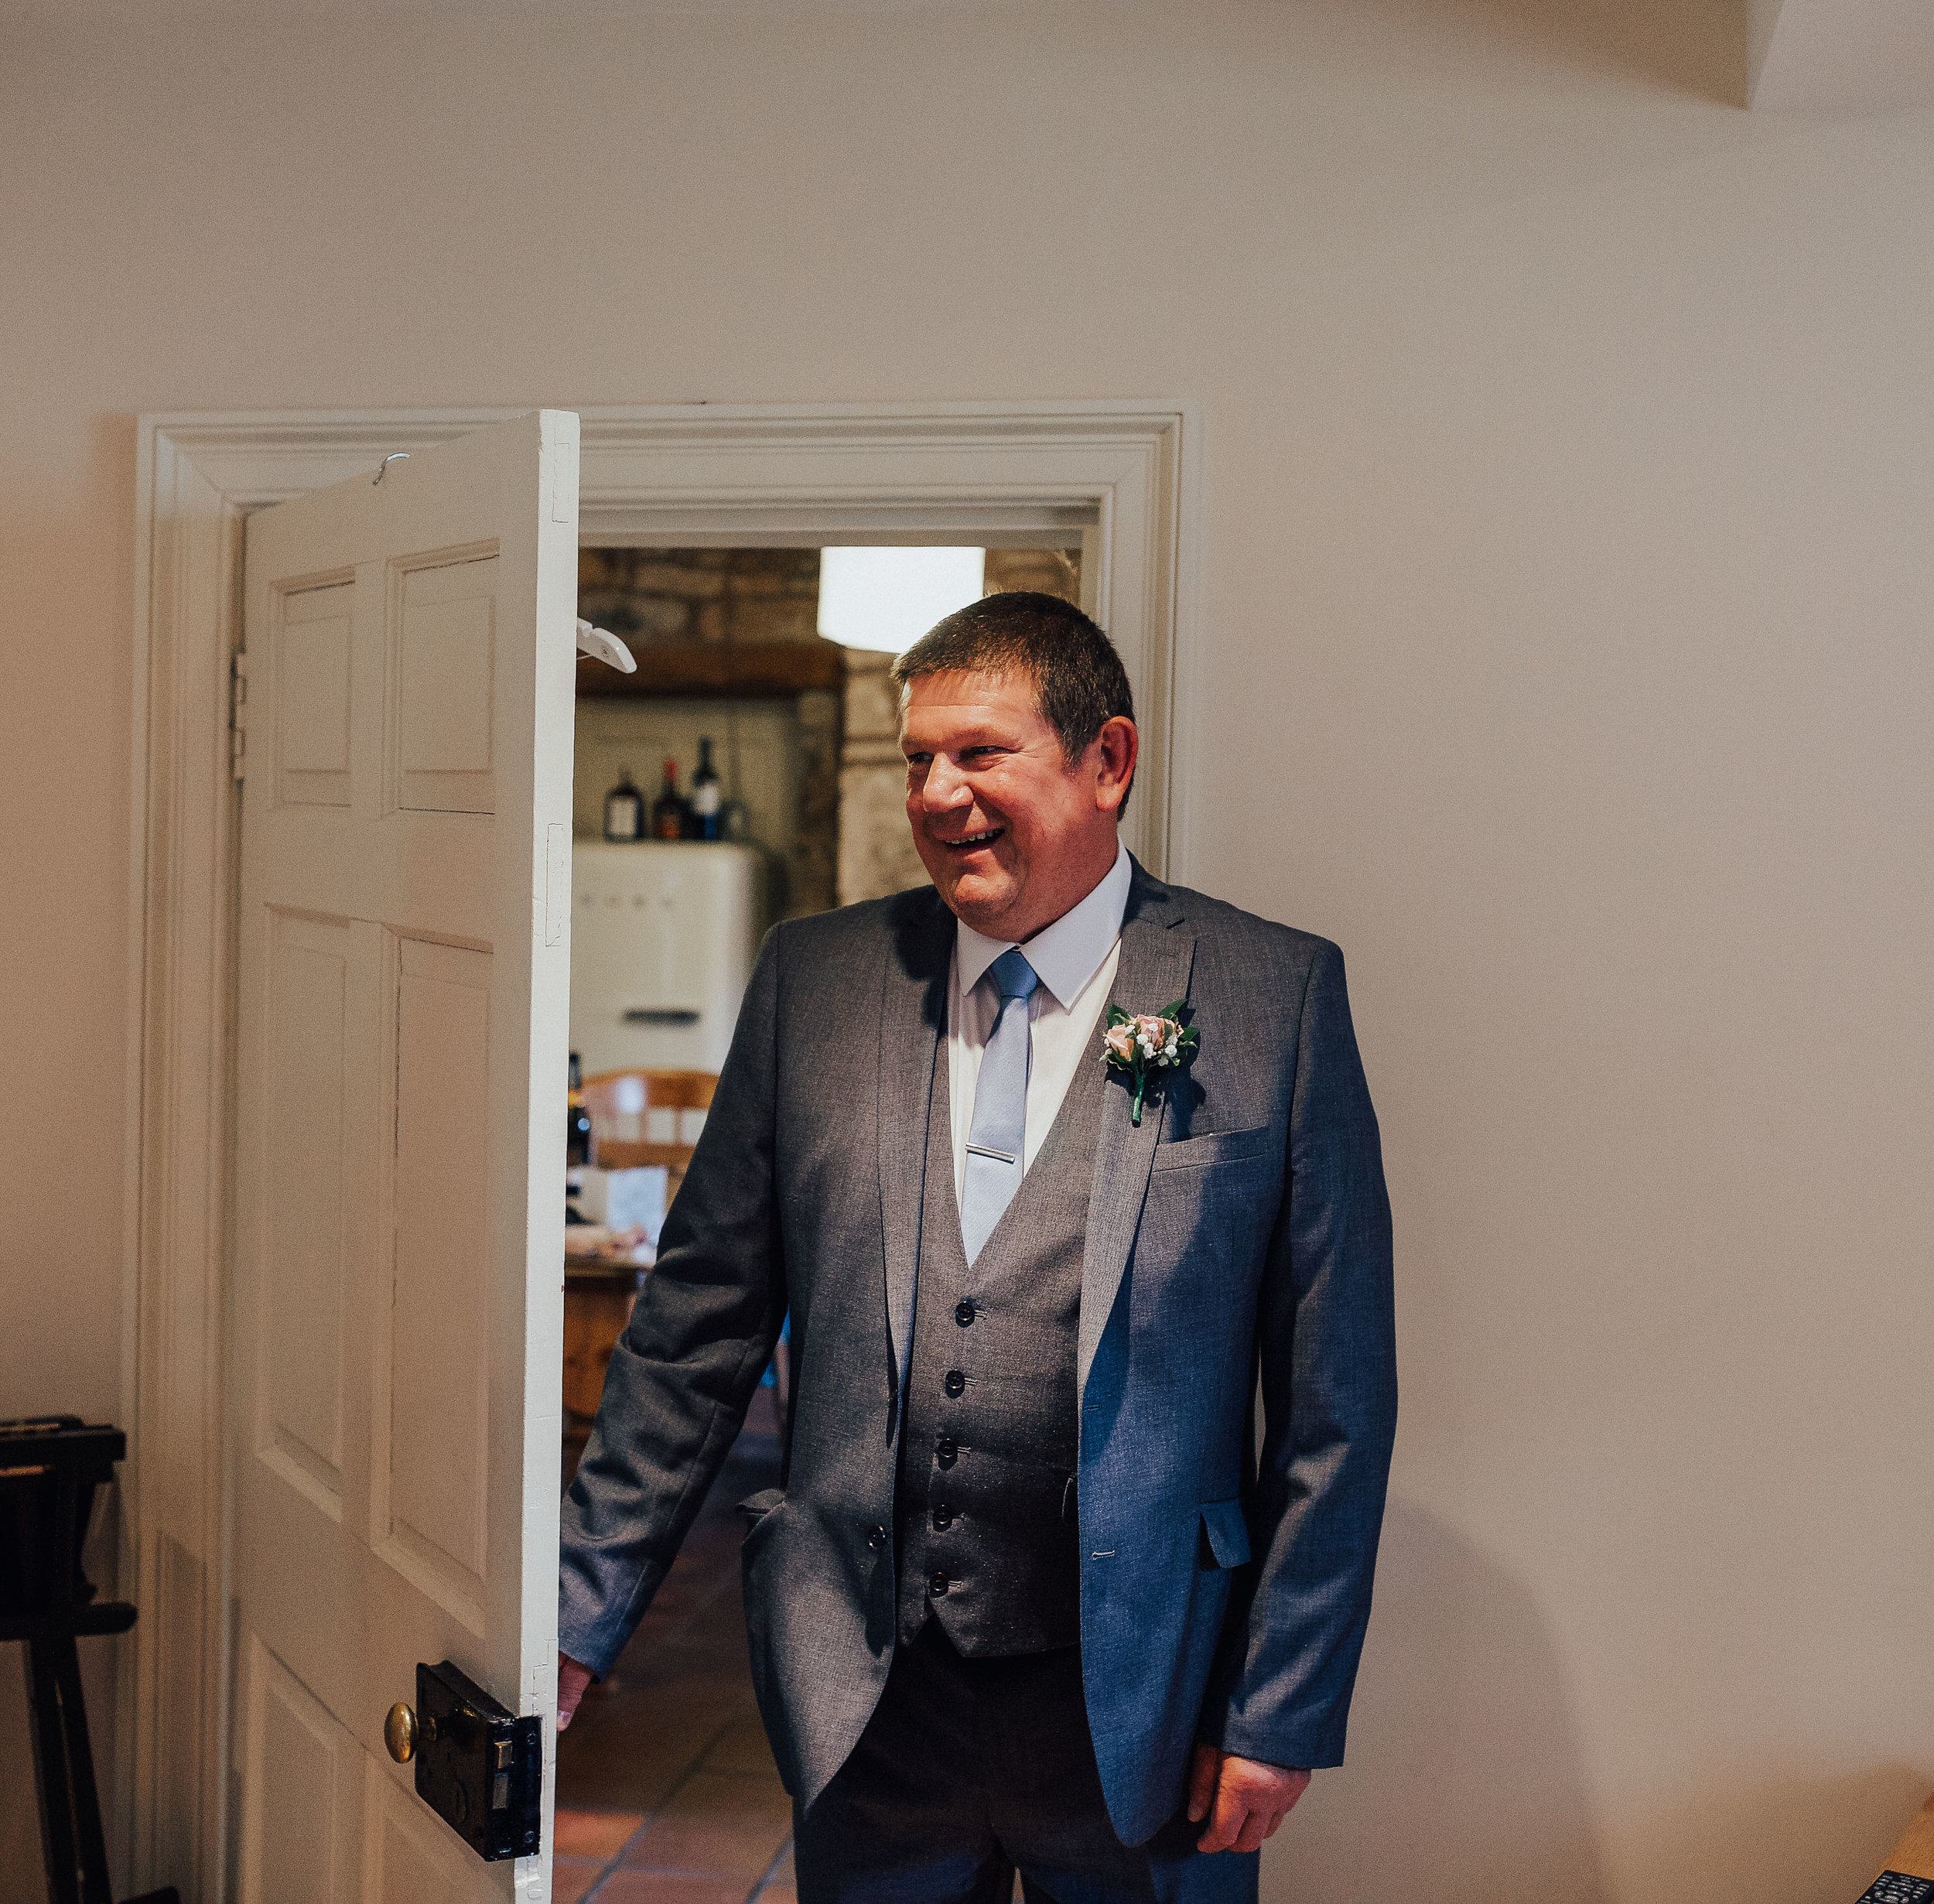 PJ_PHILLIPS_PHOTOGRAPHY_EDINBURGH_WEDDERBURN_BARNS_WEDDING_EDINBURGH_WEDDING_PHOTOGRAPHER_55.jpg